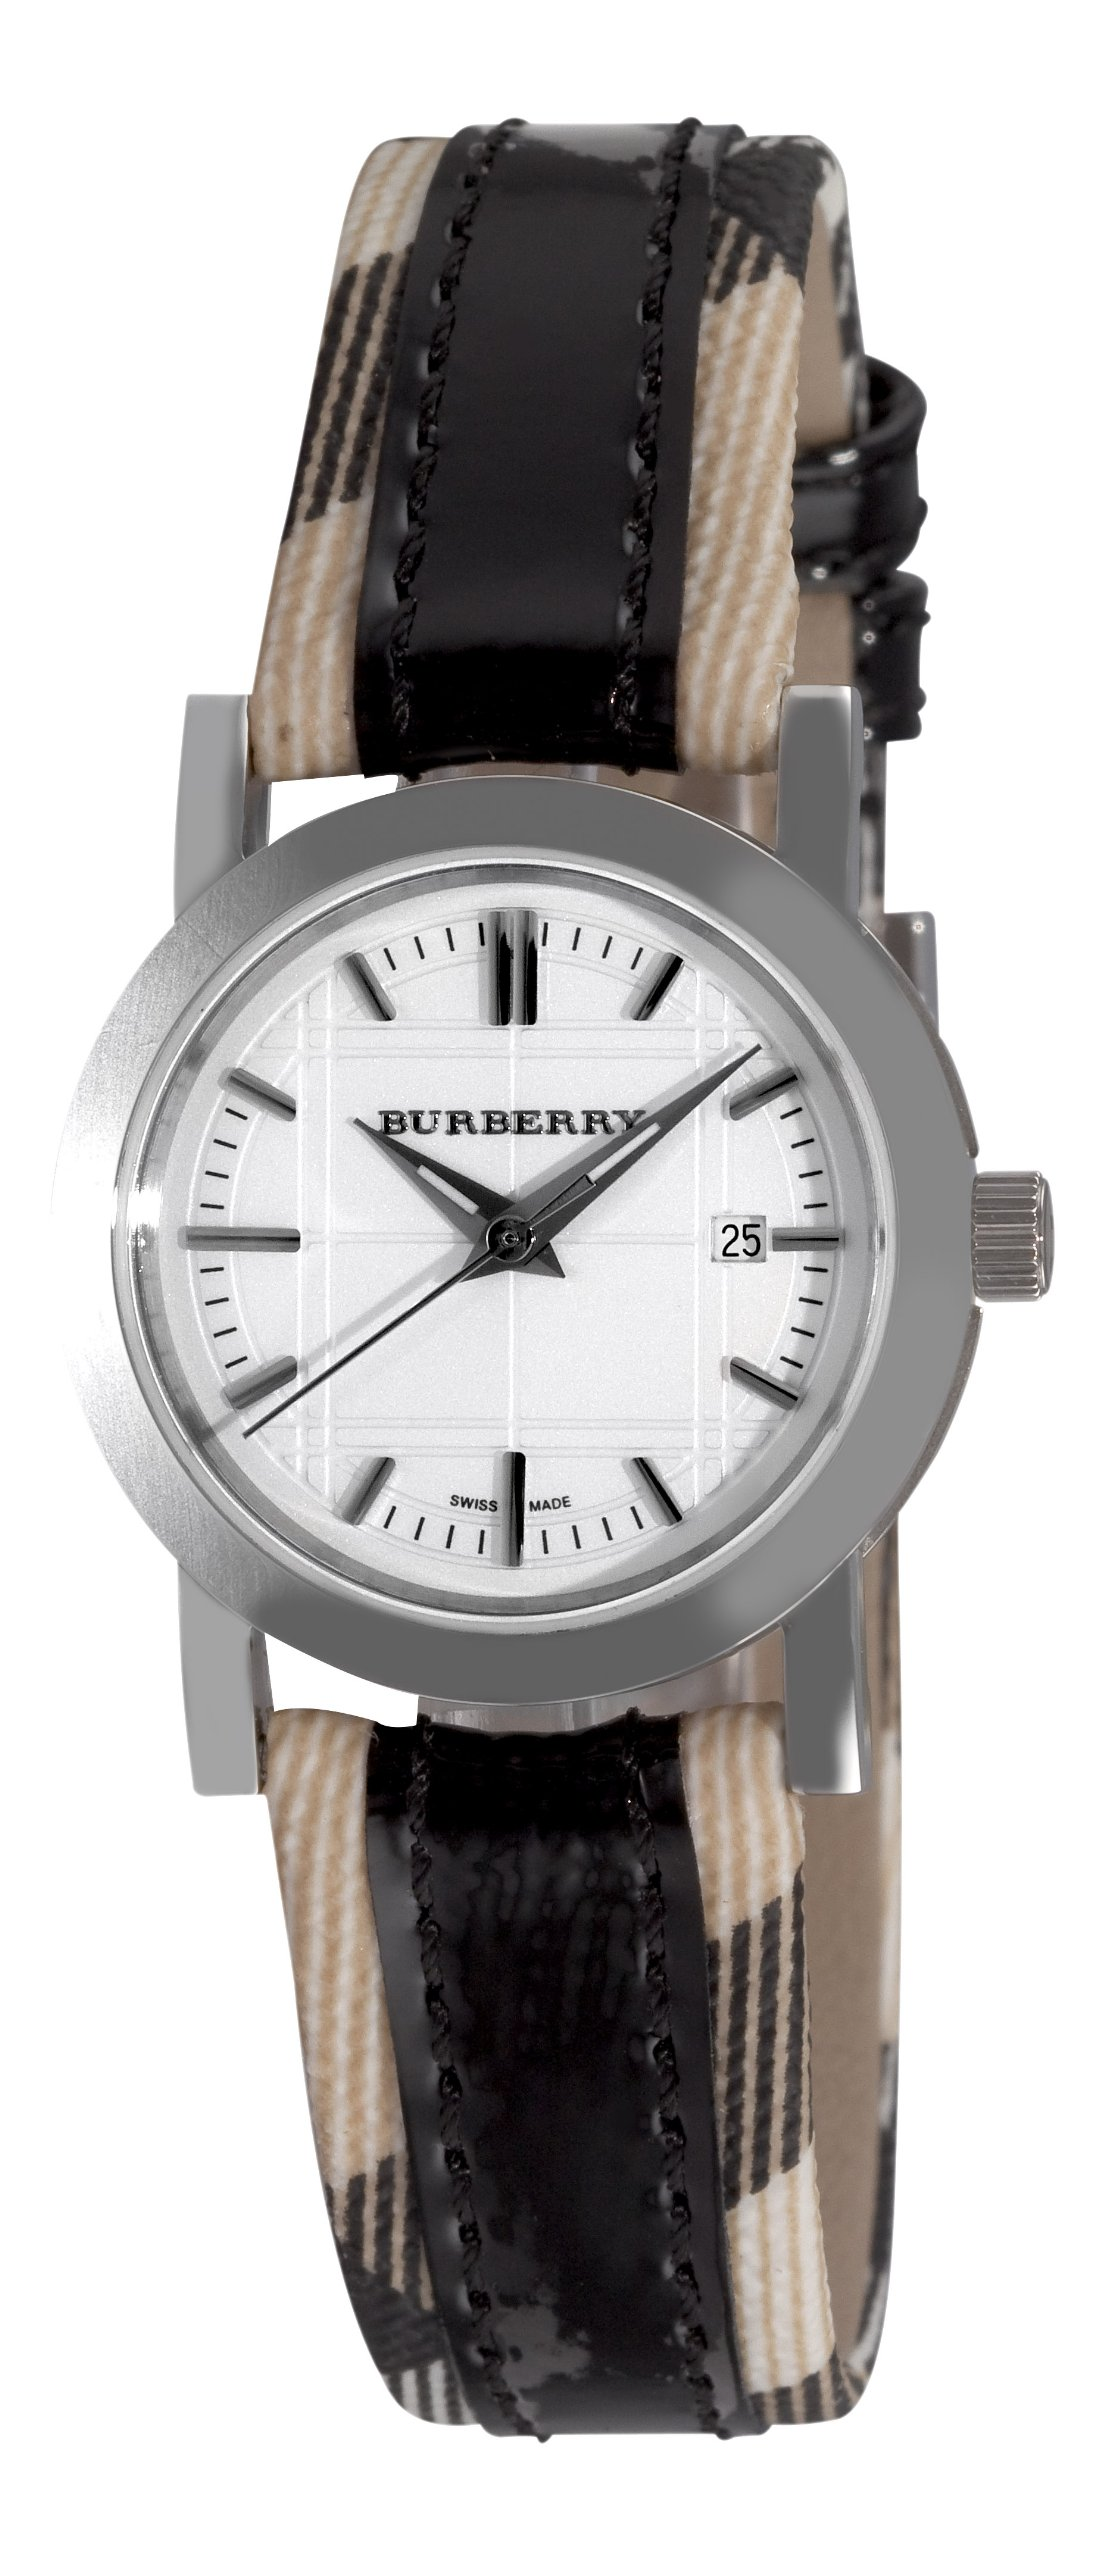 Burberry Women's BU1396 Round 3-Hand Date White Dial Watch by BURBERRY